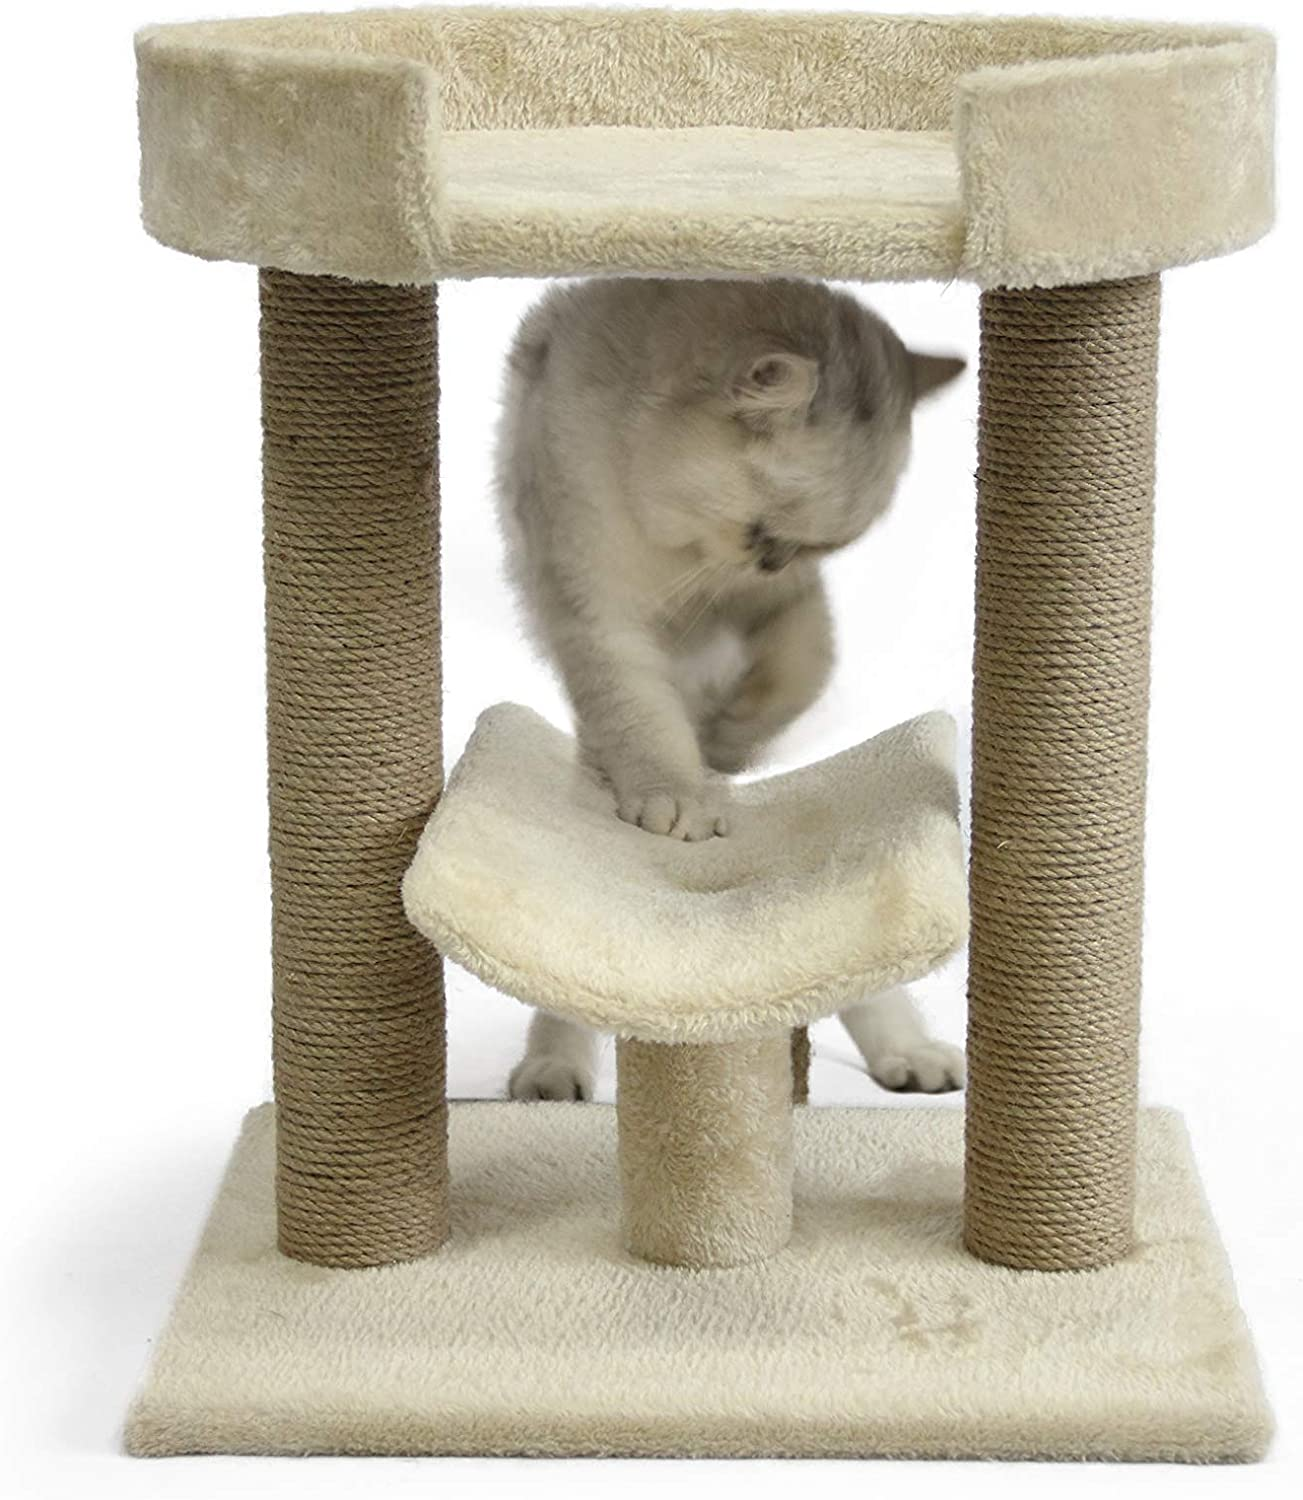 AmazonBasics Cat Tree with Platform and free prime shippping